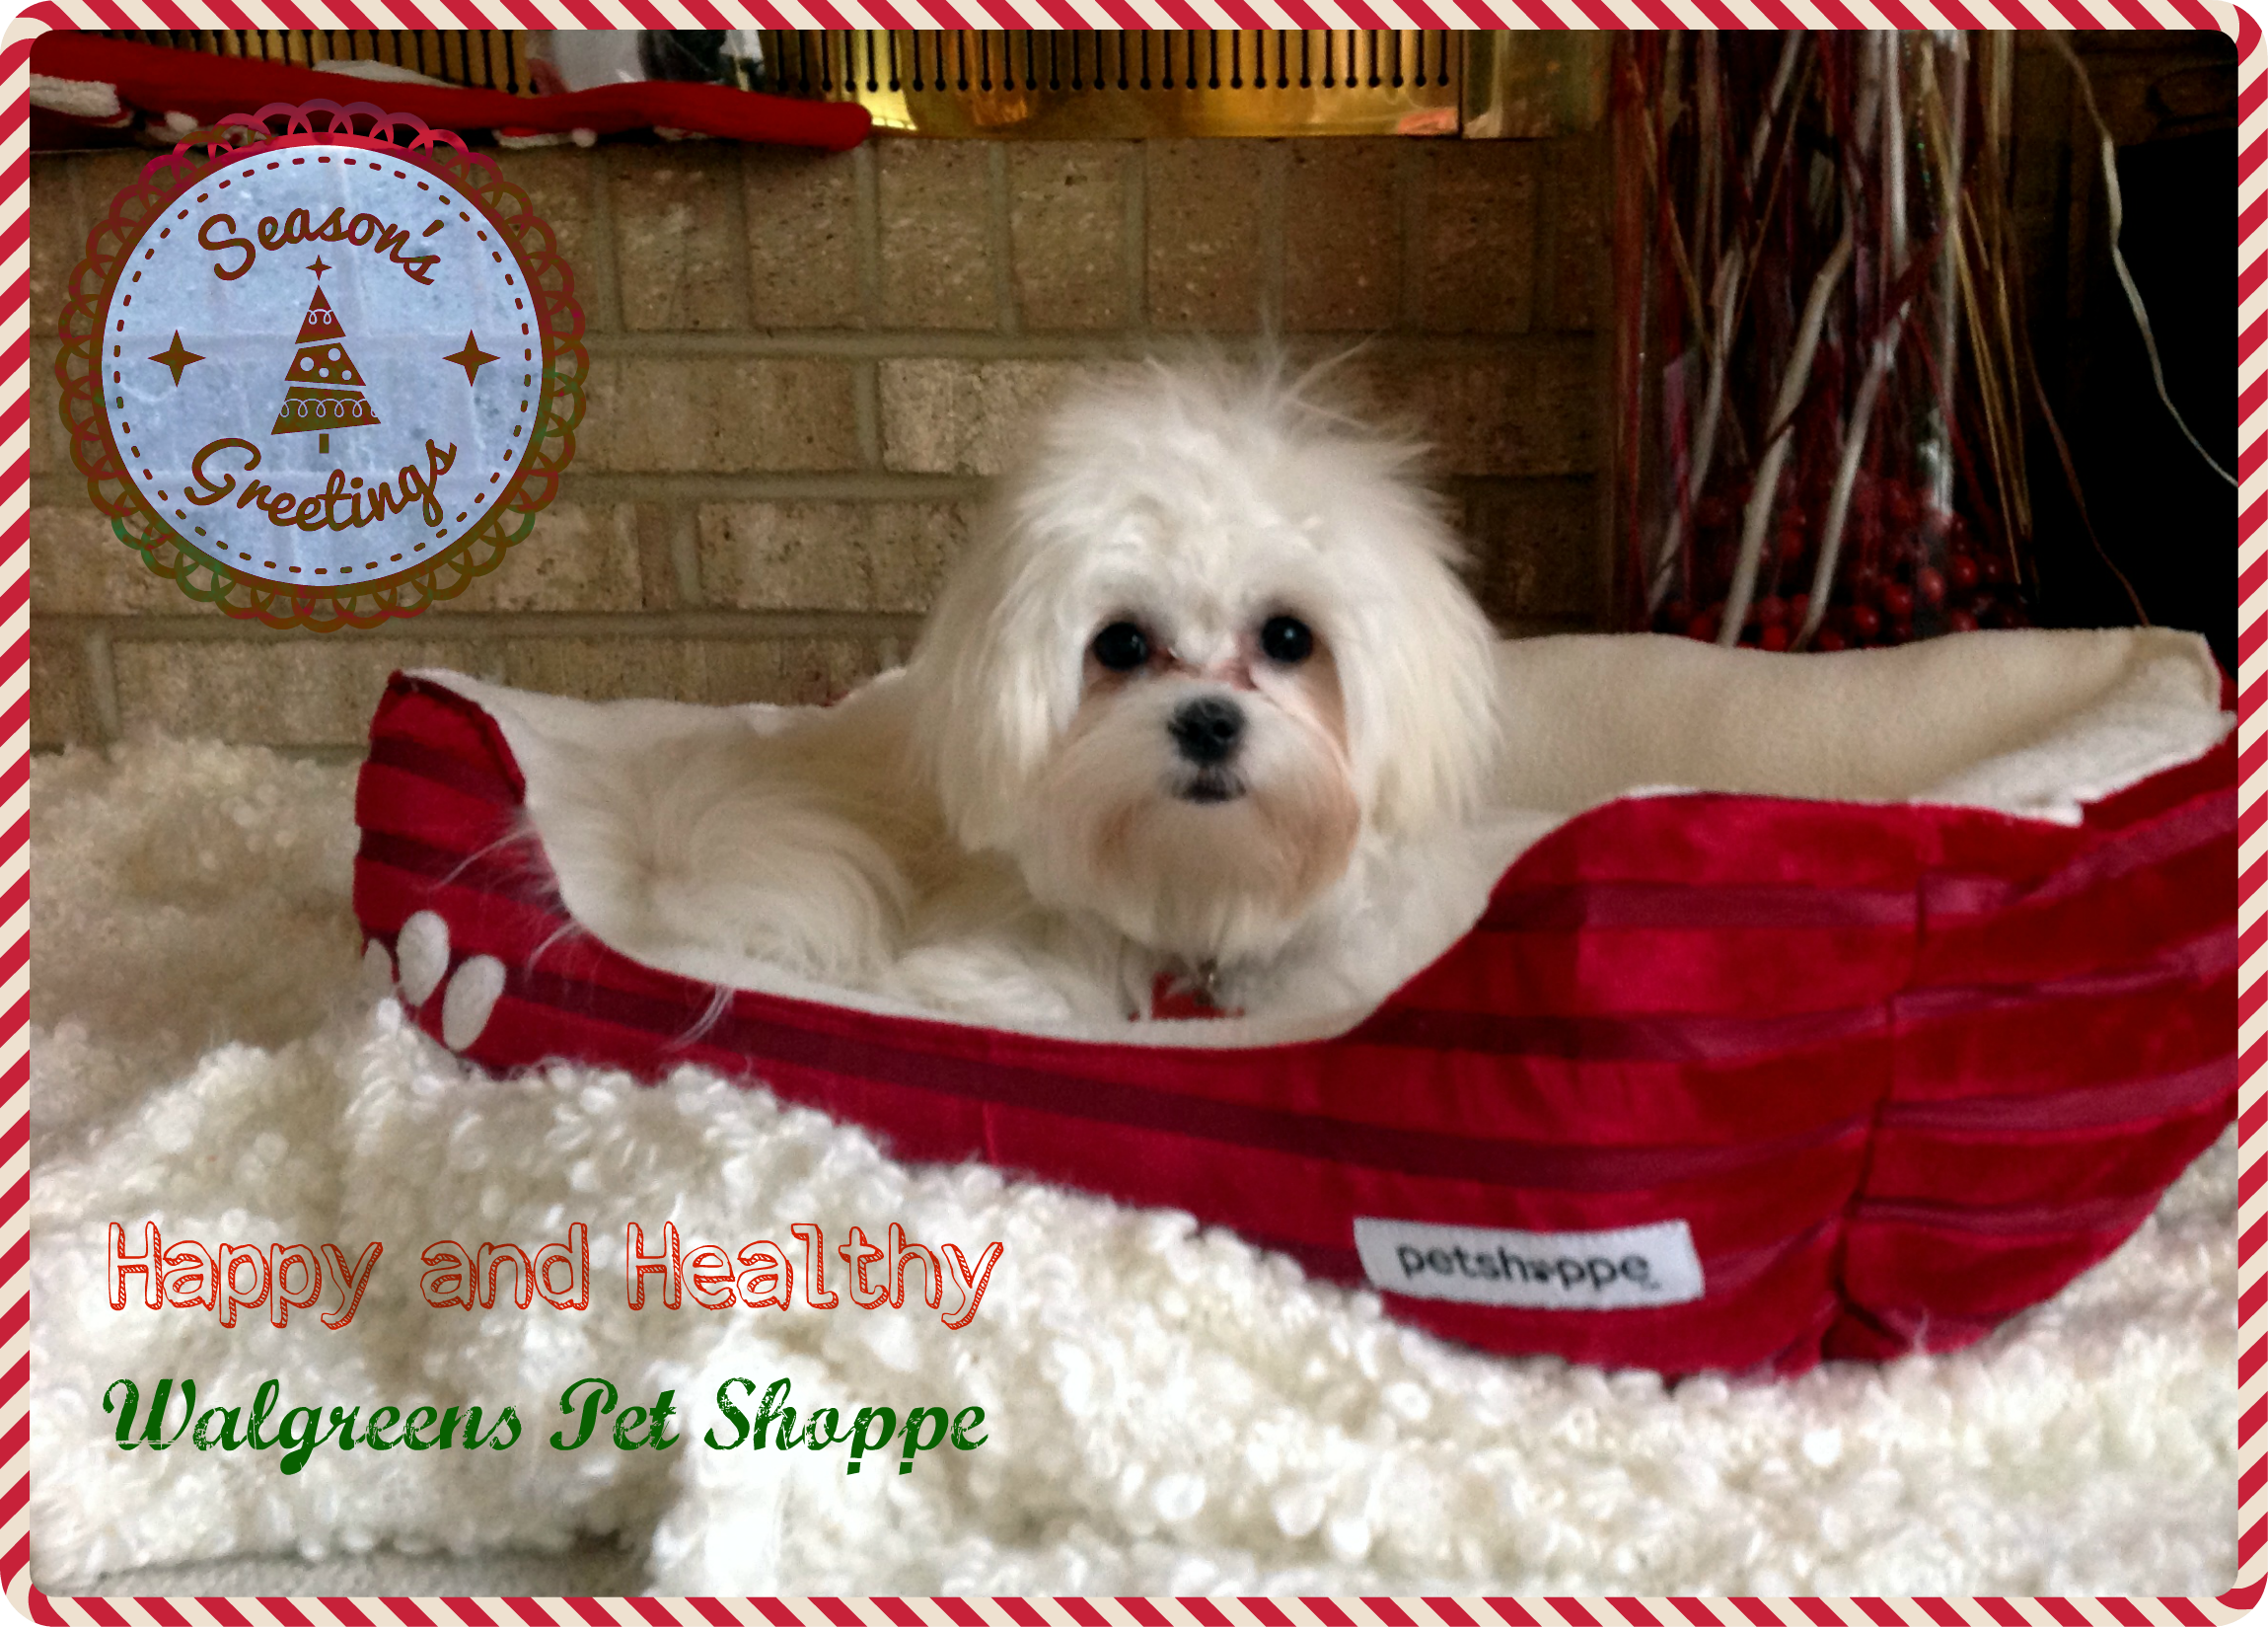 Top Five Christmas Present Ideas for Your Favorite Pet or Someone ...